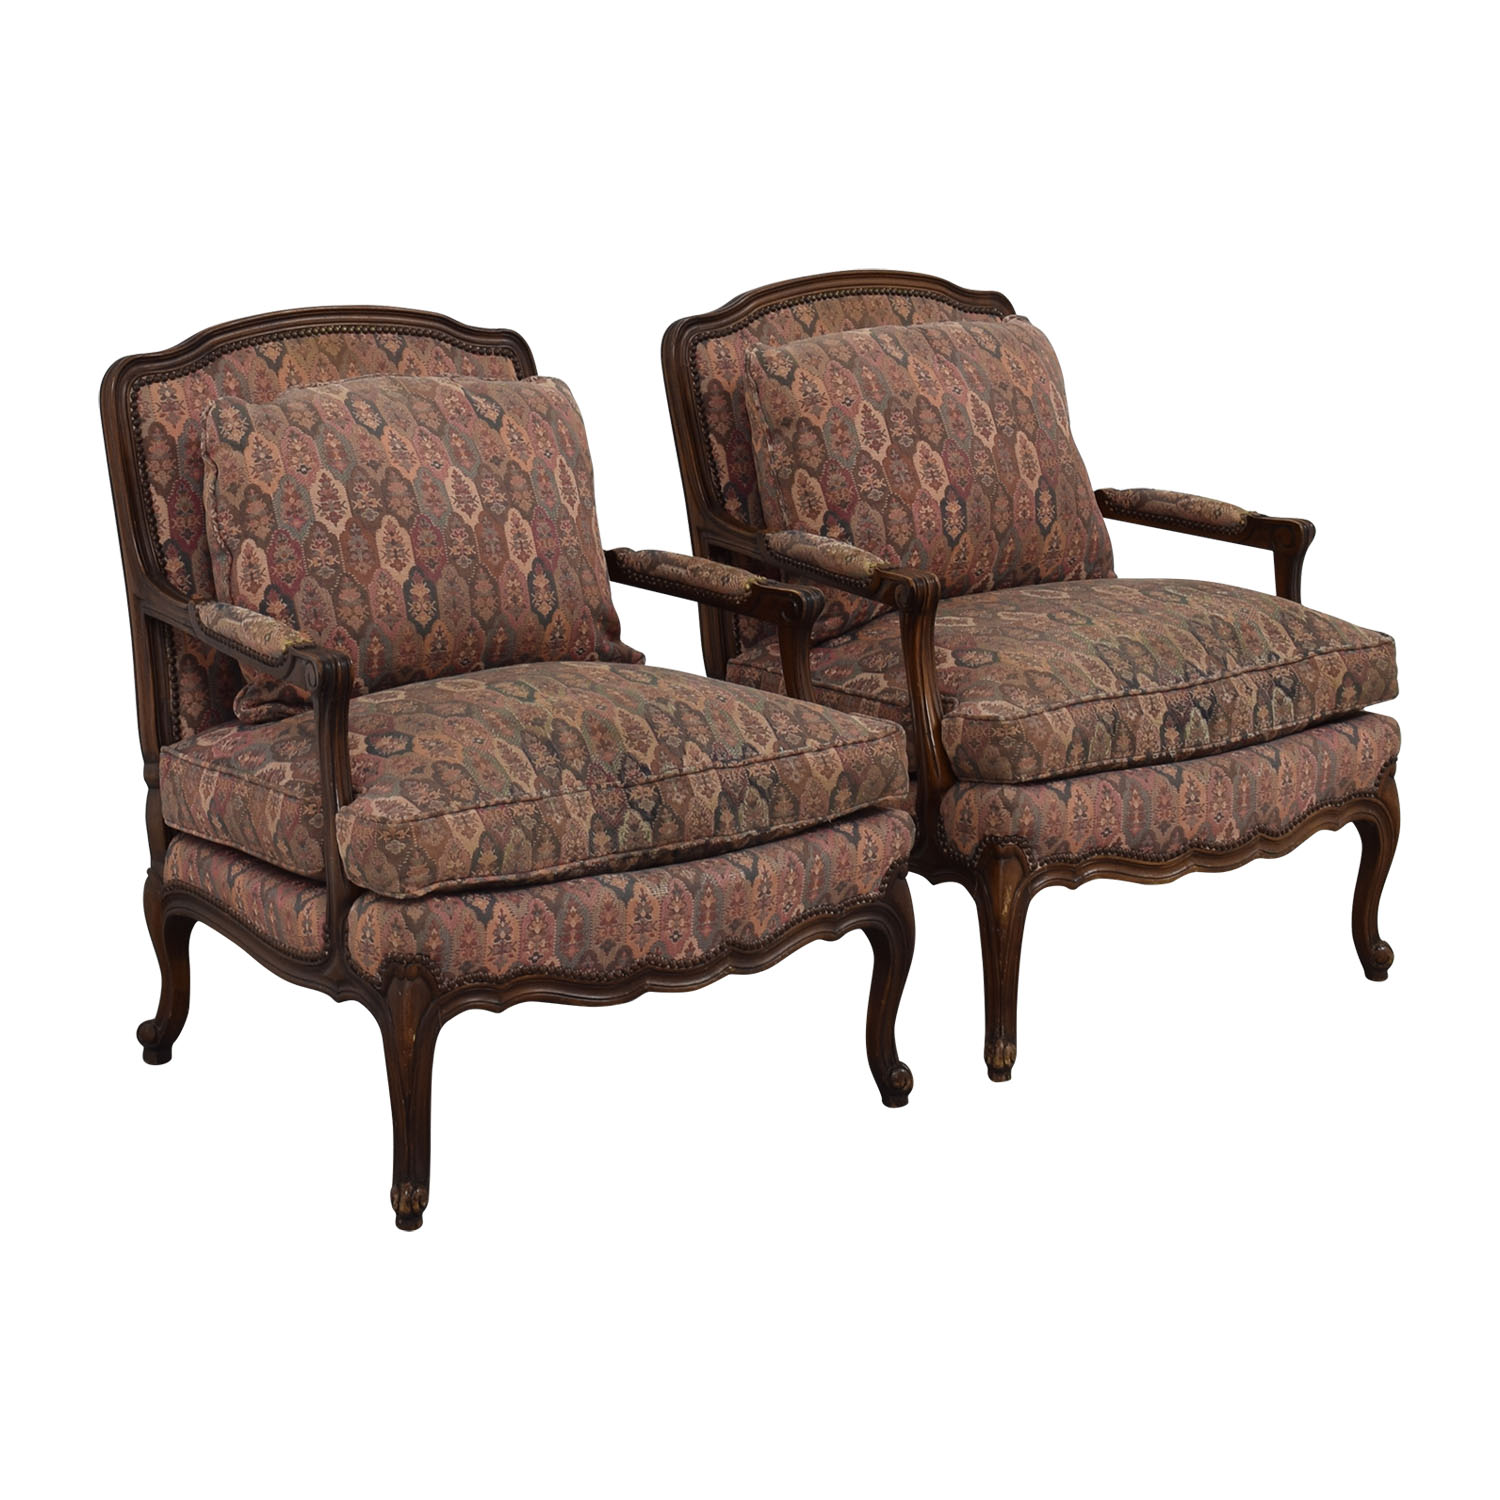 OFF TRS Furniture TRS Furniture Low Wing Back Arm Chairs Chairs